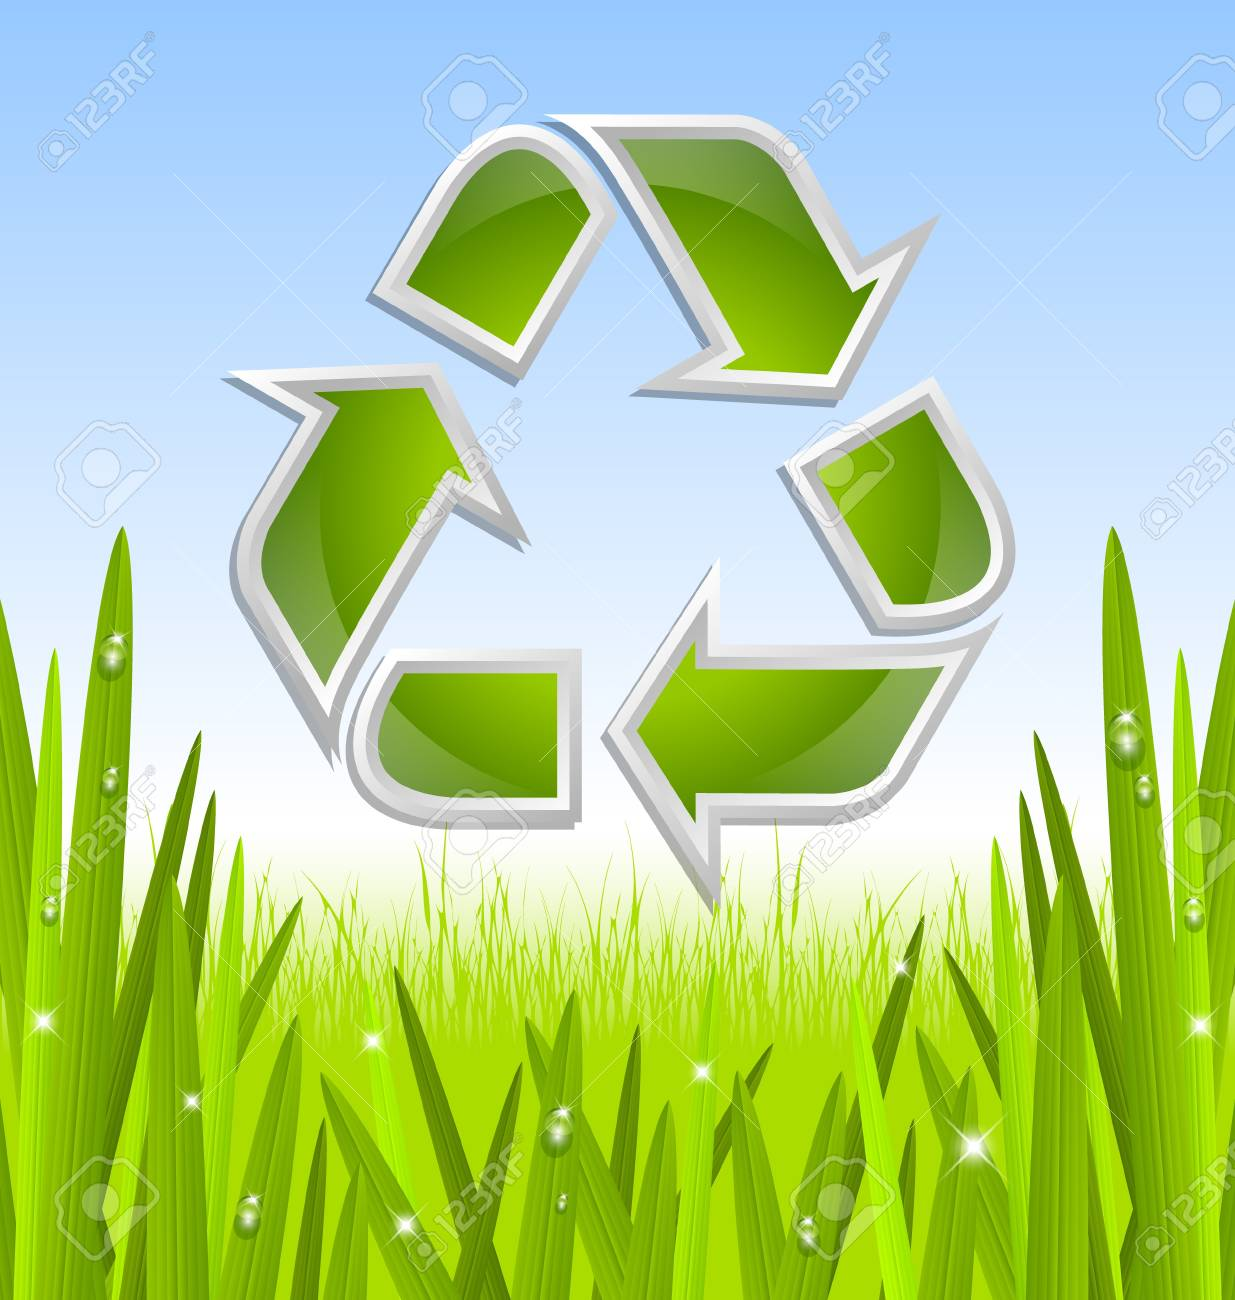 Green and glossy recycled symbol icon with grass and morning dew Stock Vector - 18419548